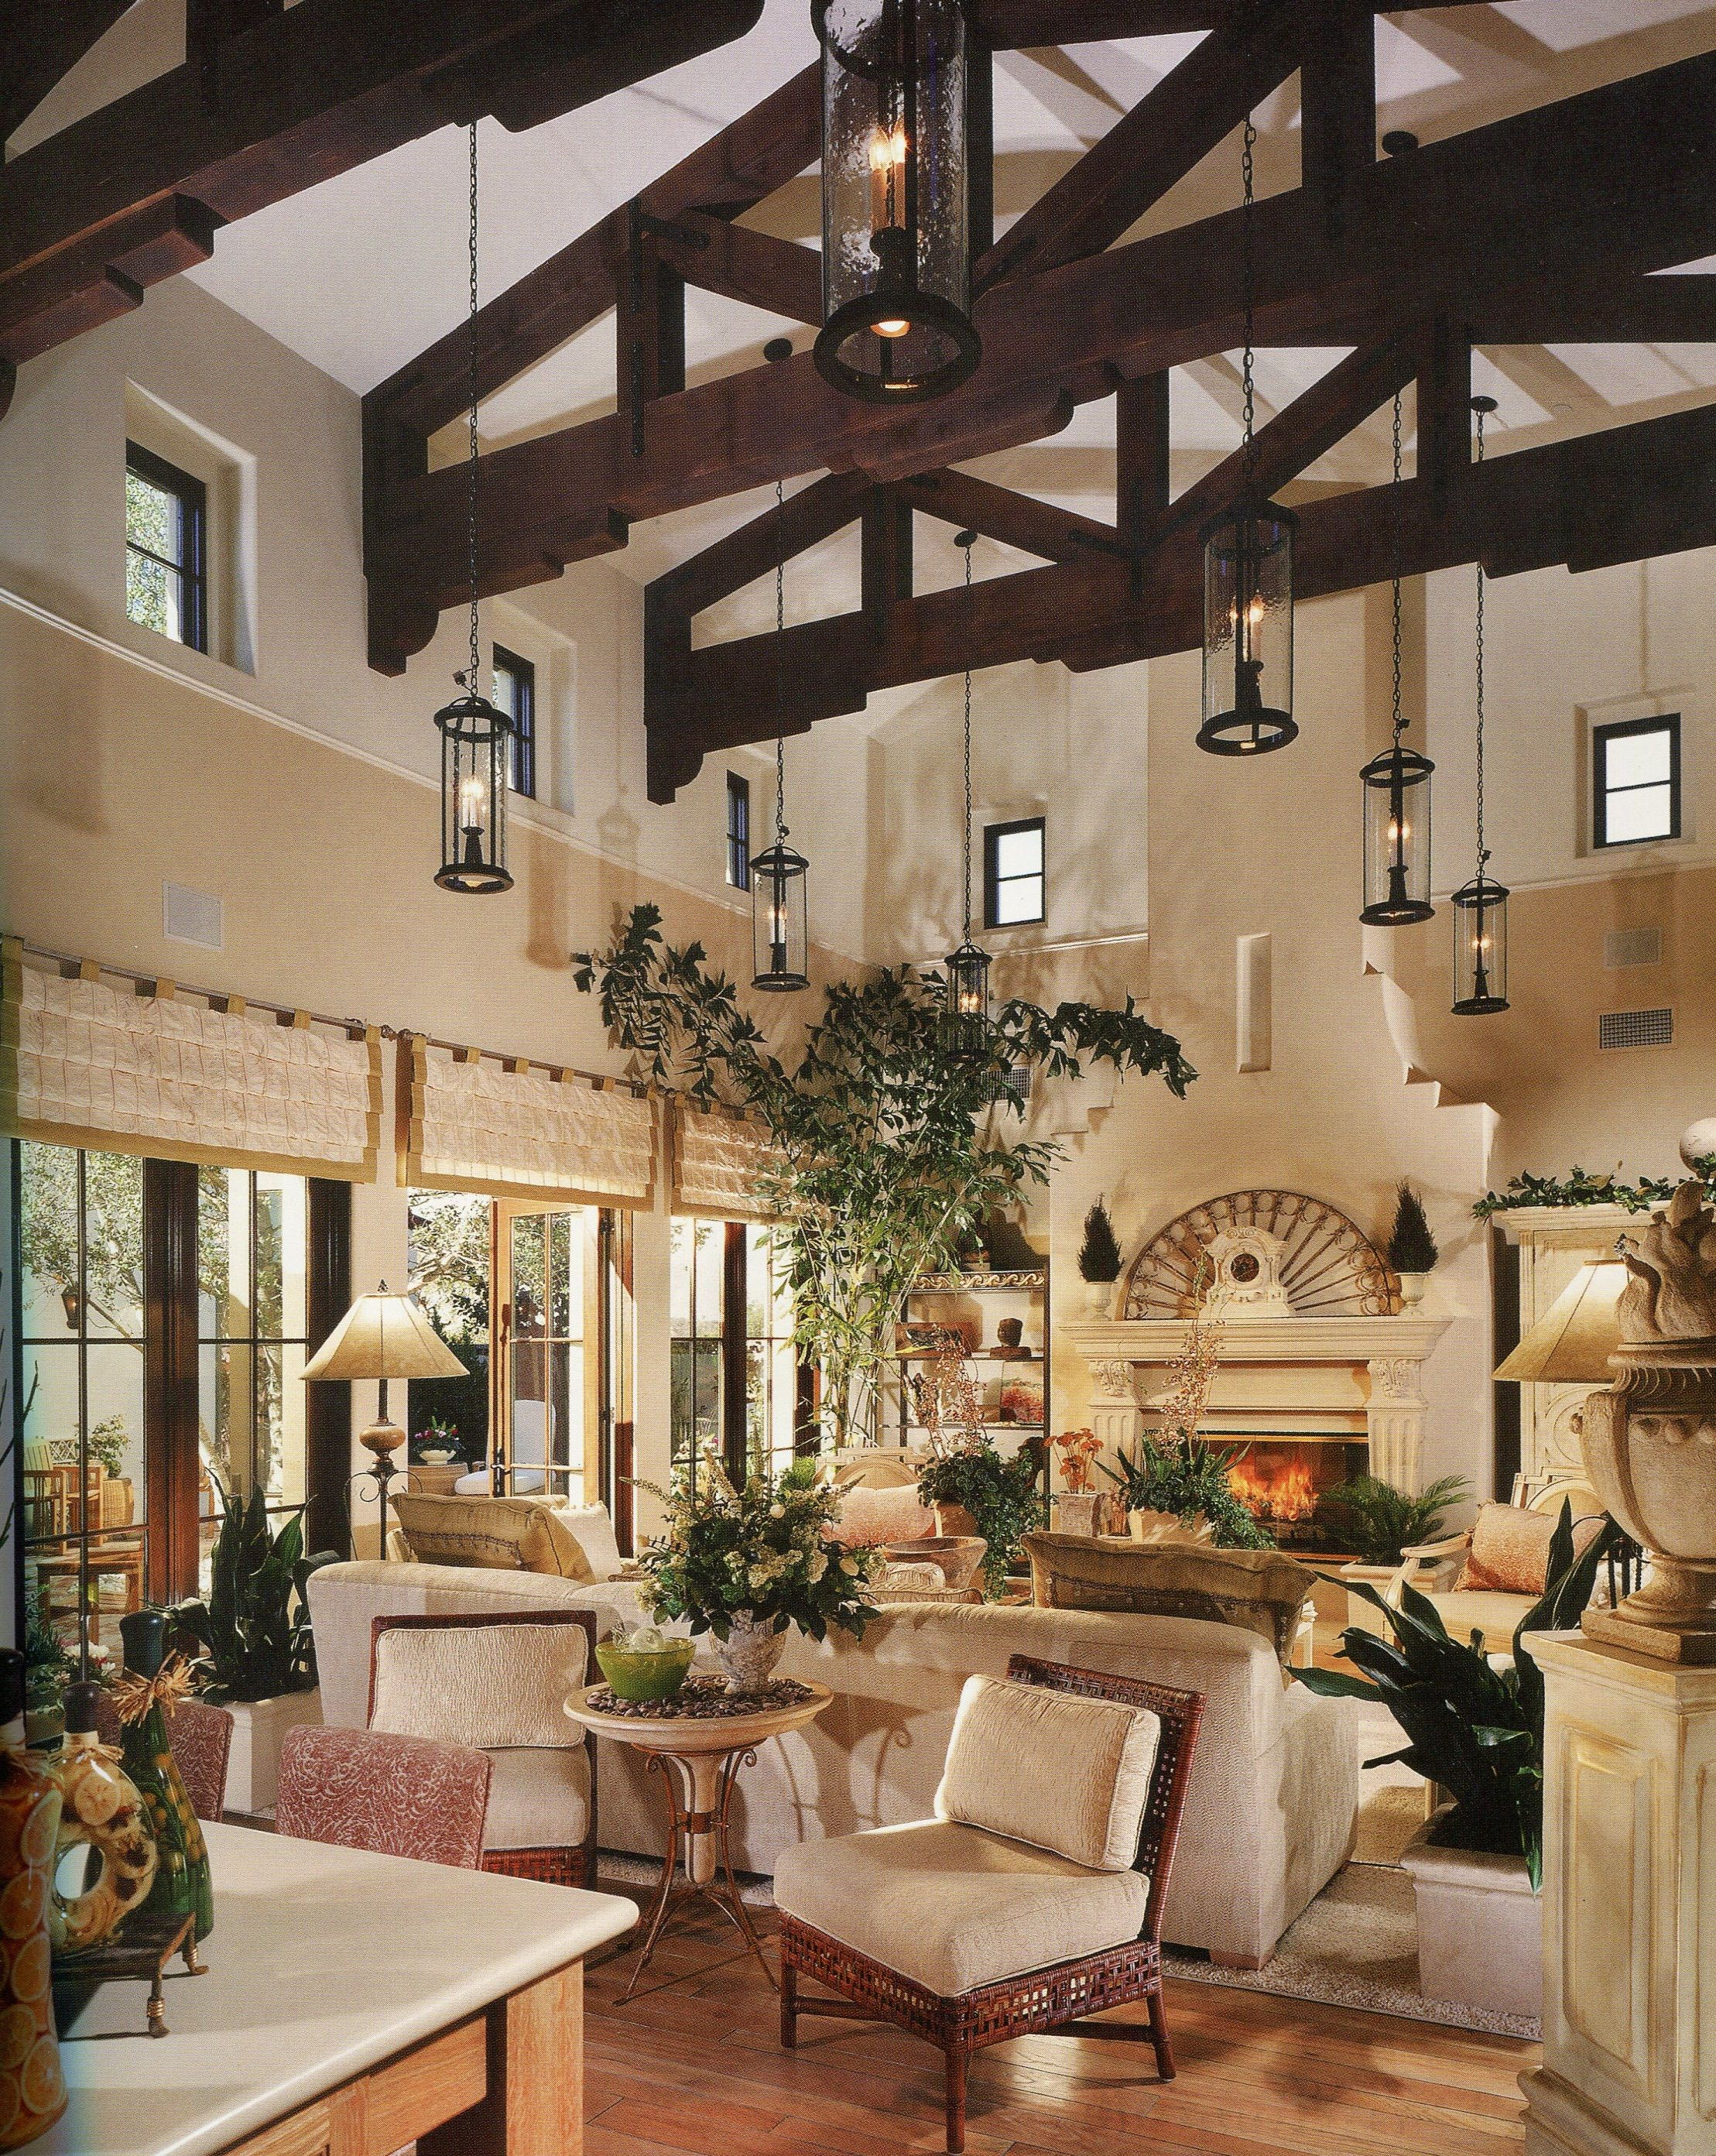 Beautiful home interiors incredible room  clasictraditional interiors  pinterest  room